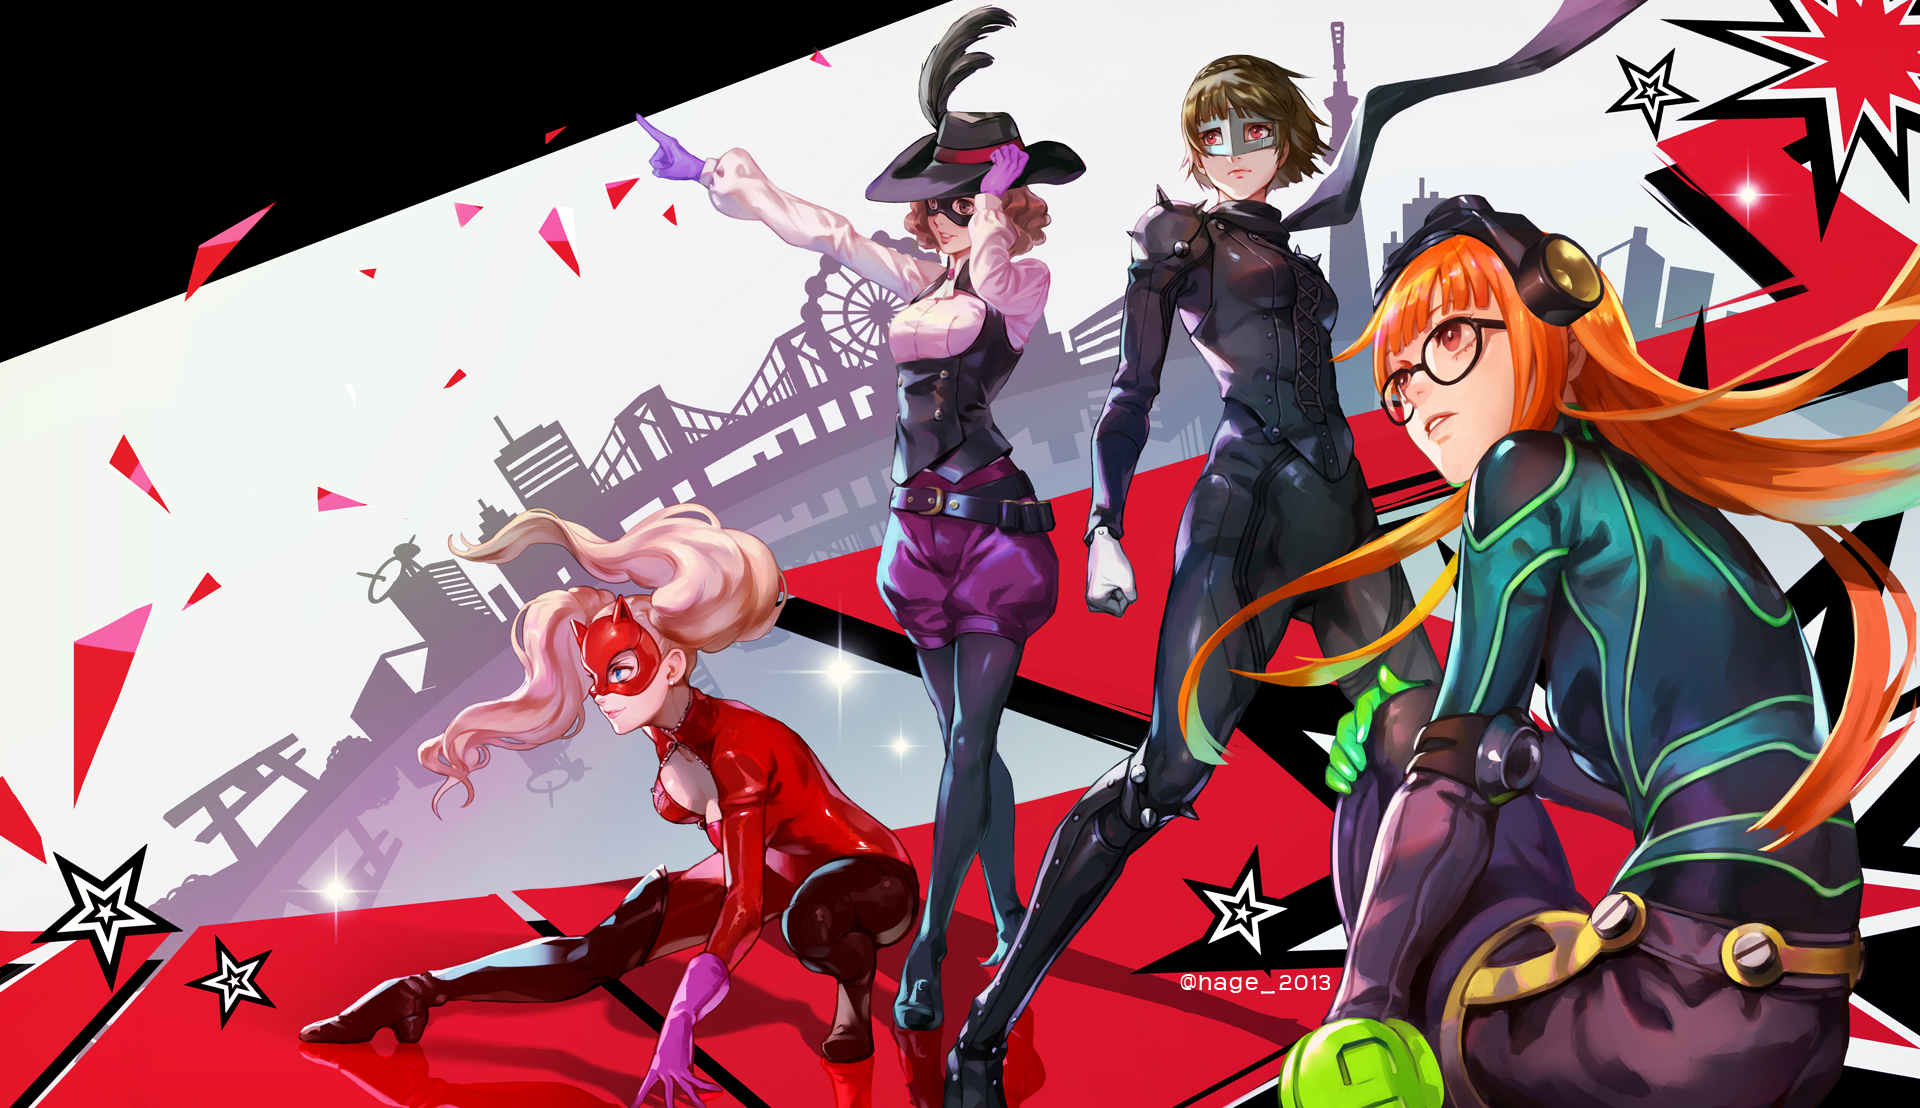 Persona 5 Wallpaper Iphone Posted By John Cunningham